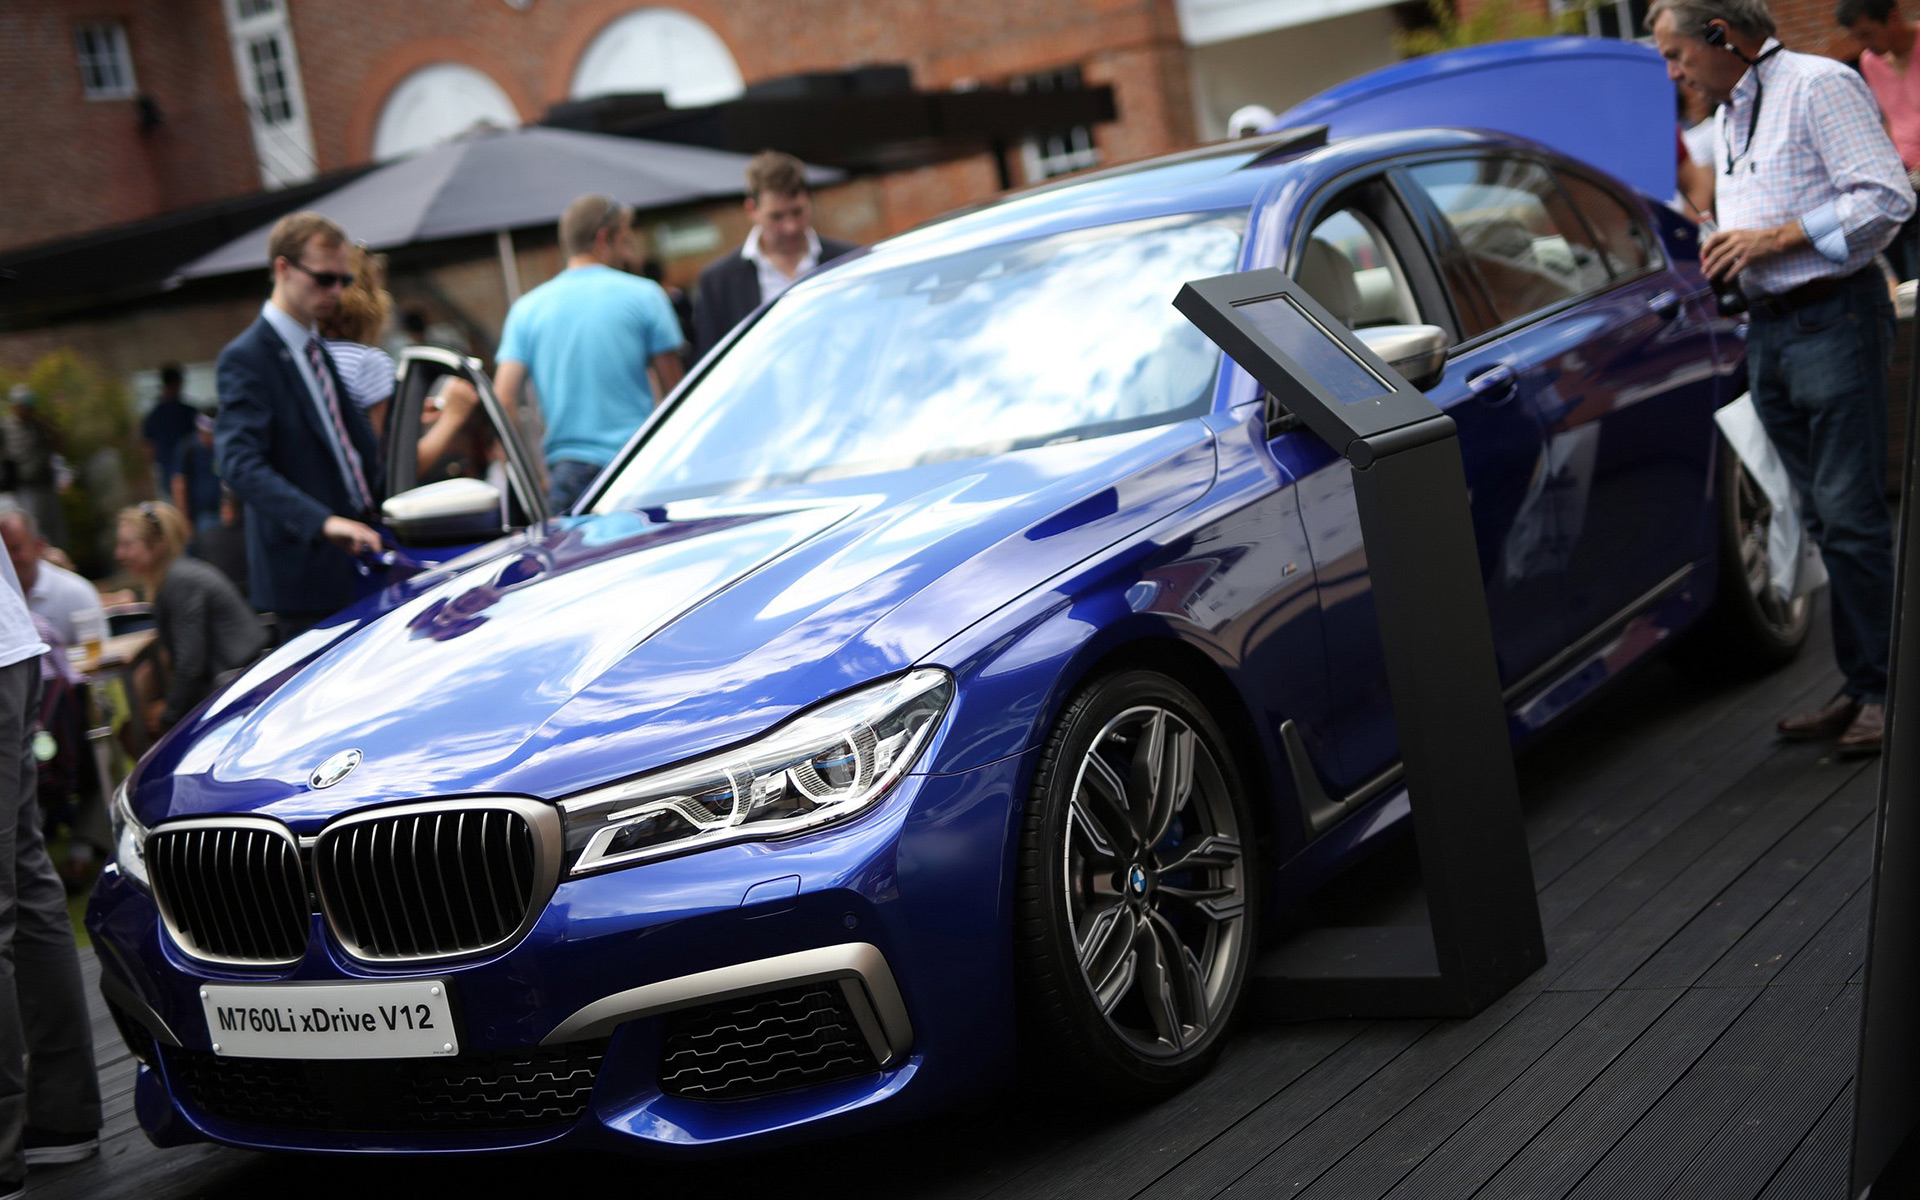 BMW M760Li xDrive, V12, Goodwood Festival of Speed